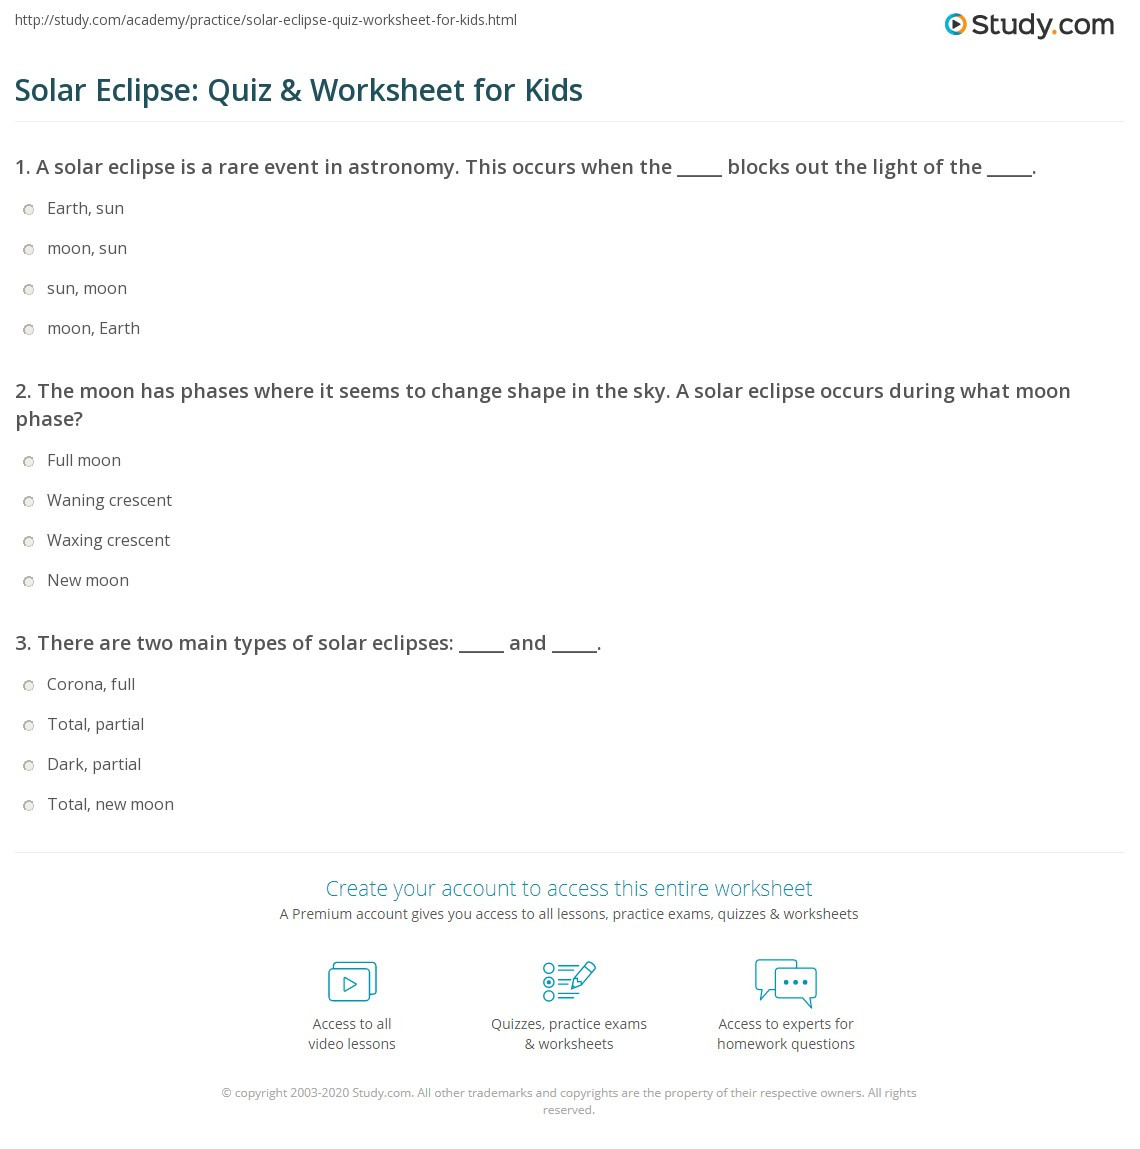 Solar Eclipse Worksheets Middle School solar Eclipse Quiz & Worksheet for Kids